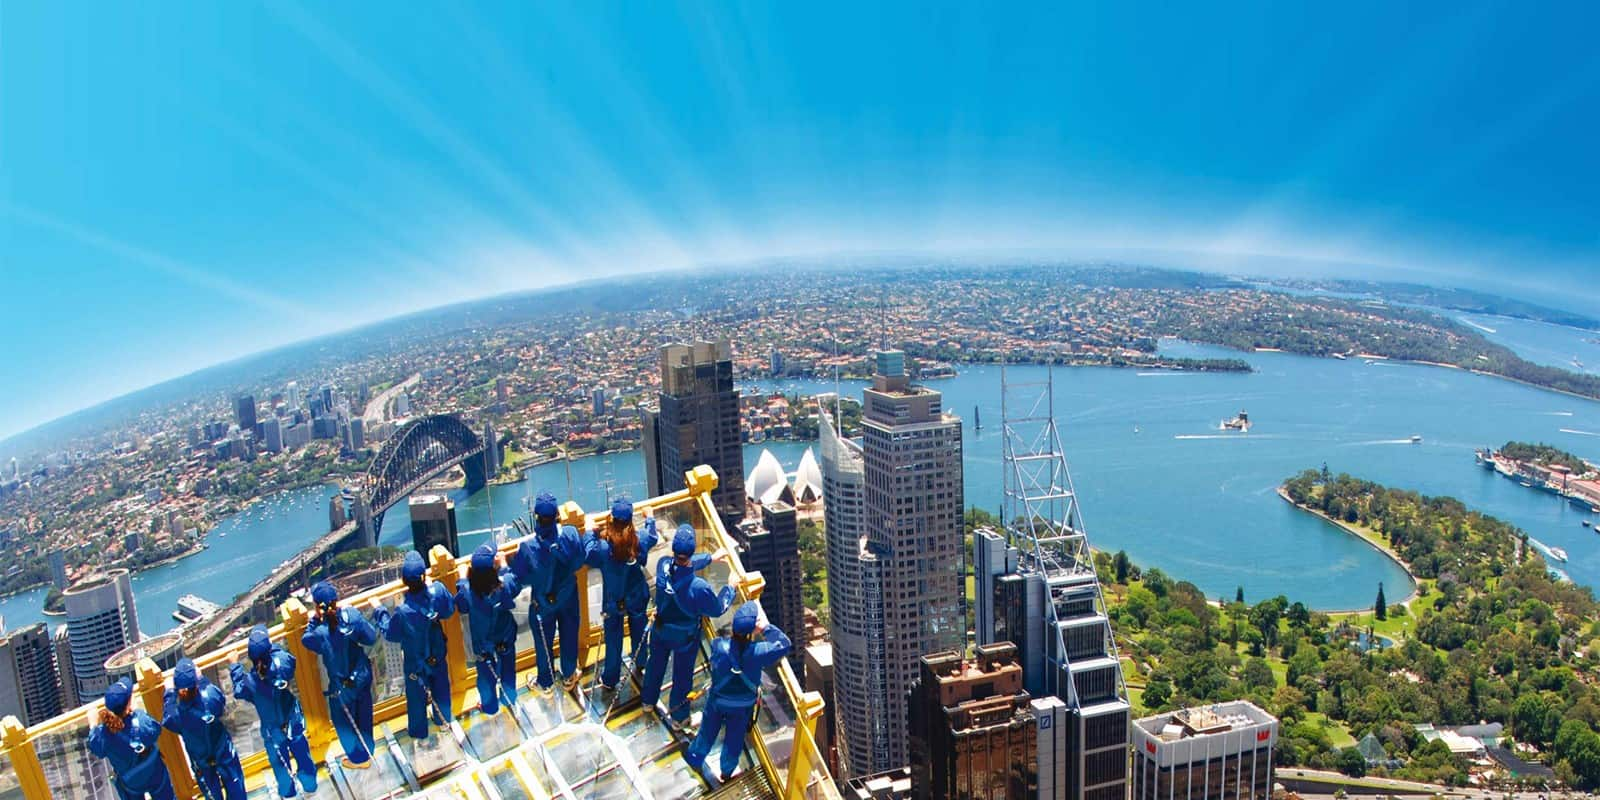 Skywalk at the Sydney Tower Eye - Best Things to Do in Sydney With Kids